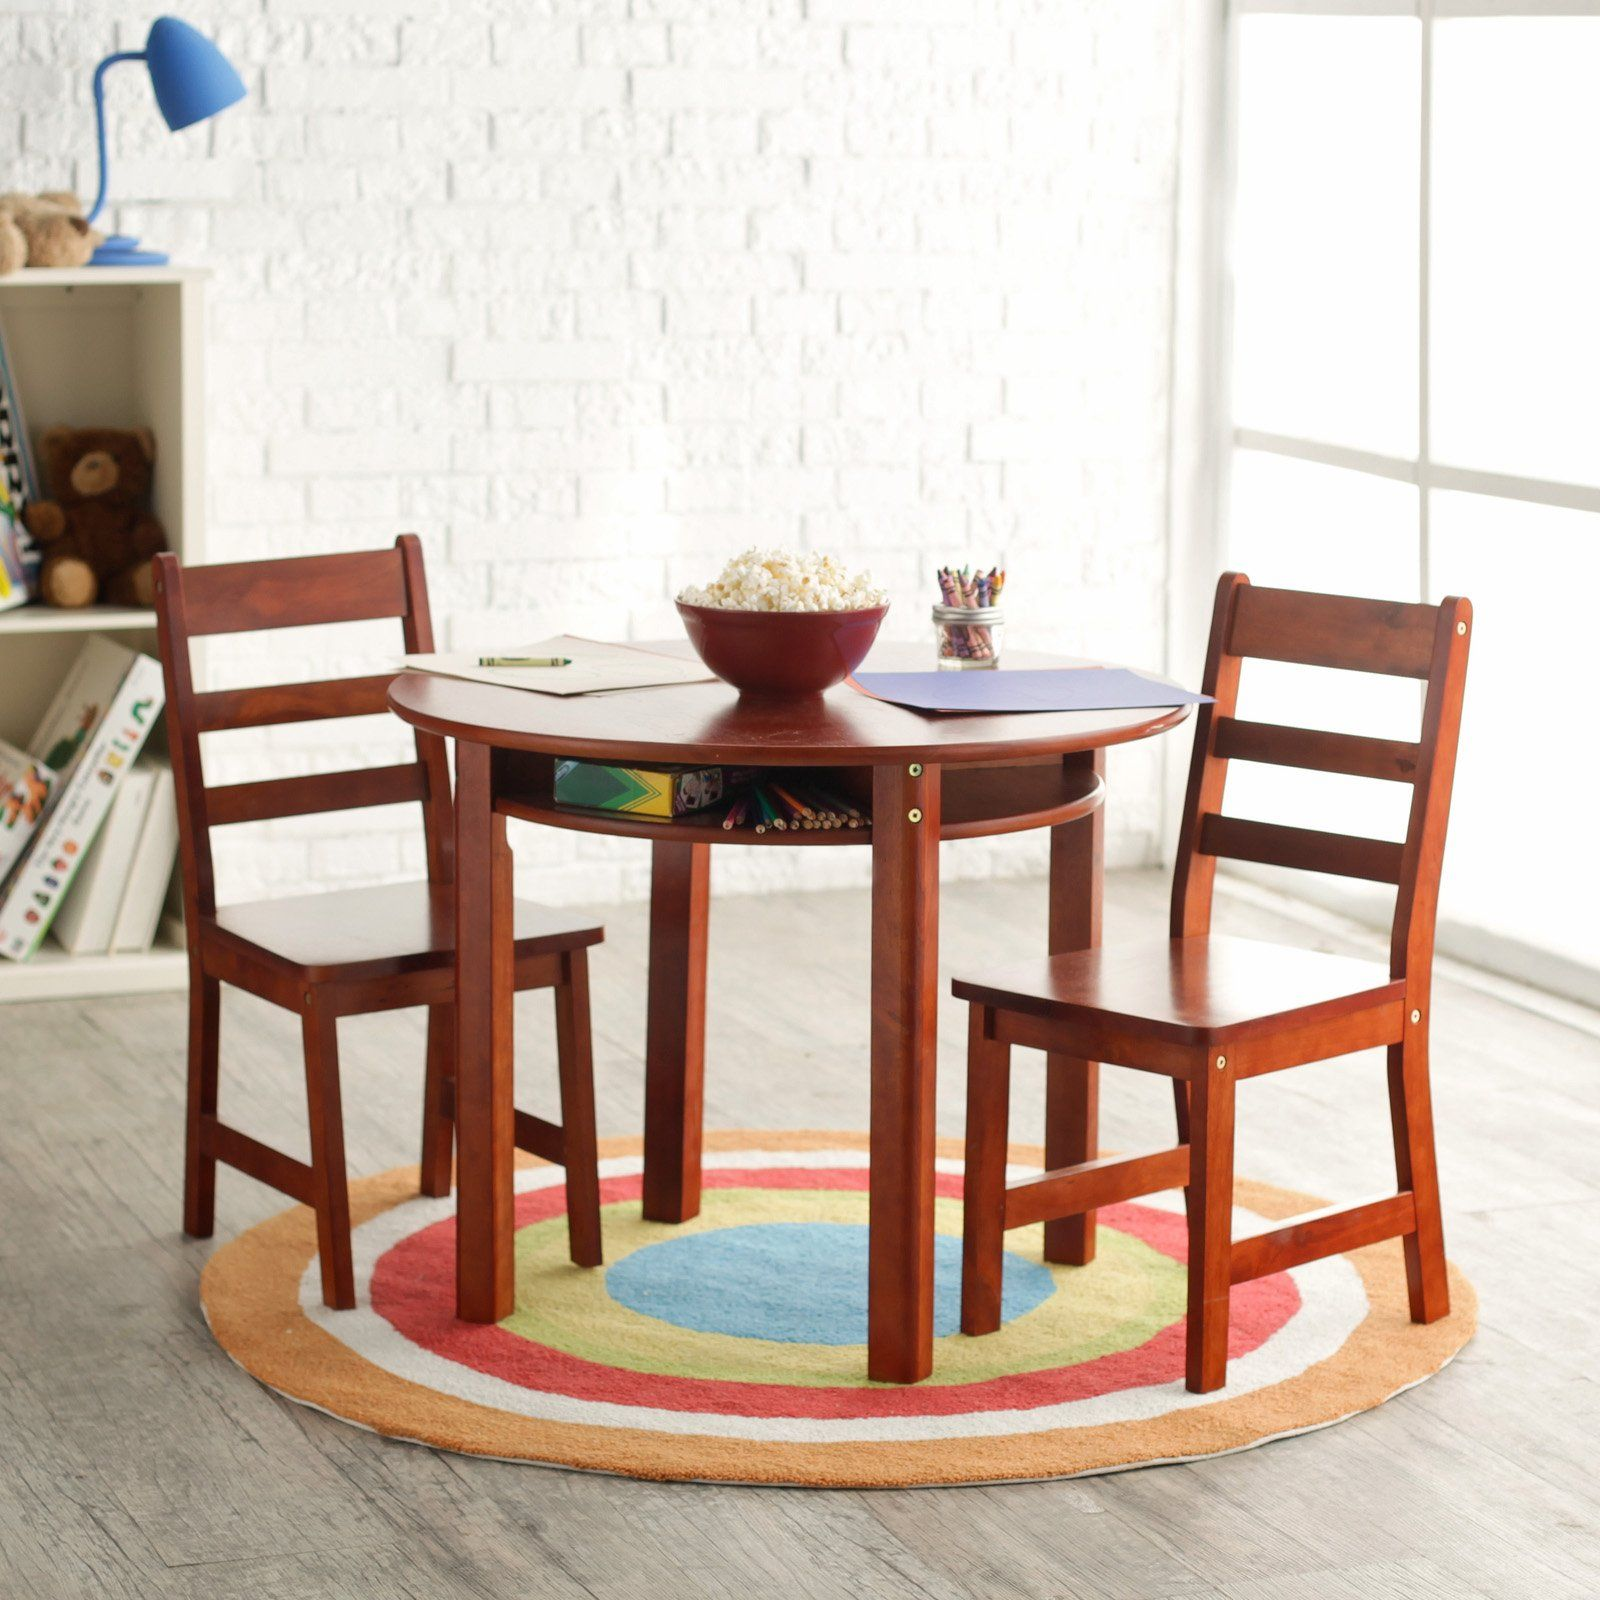 Explore Round Table And Chairs and more. Have to have it  Lipper Childrens Round Table and Chair Set